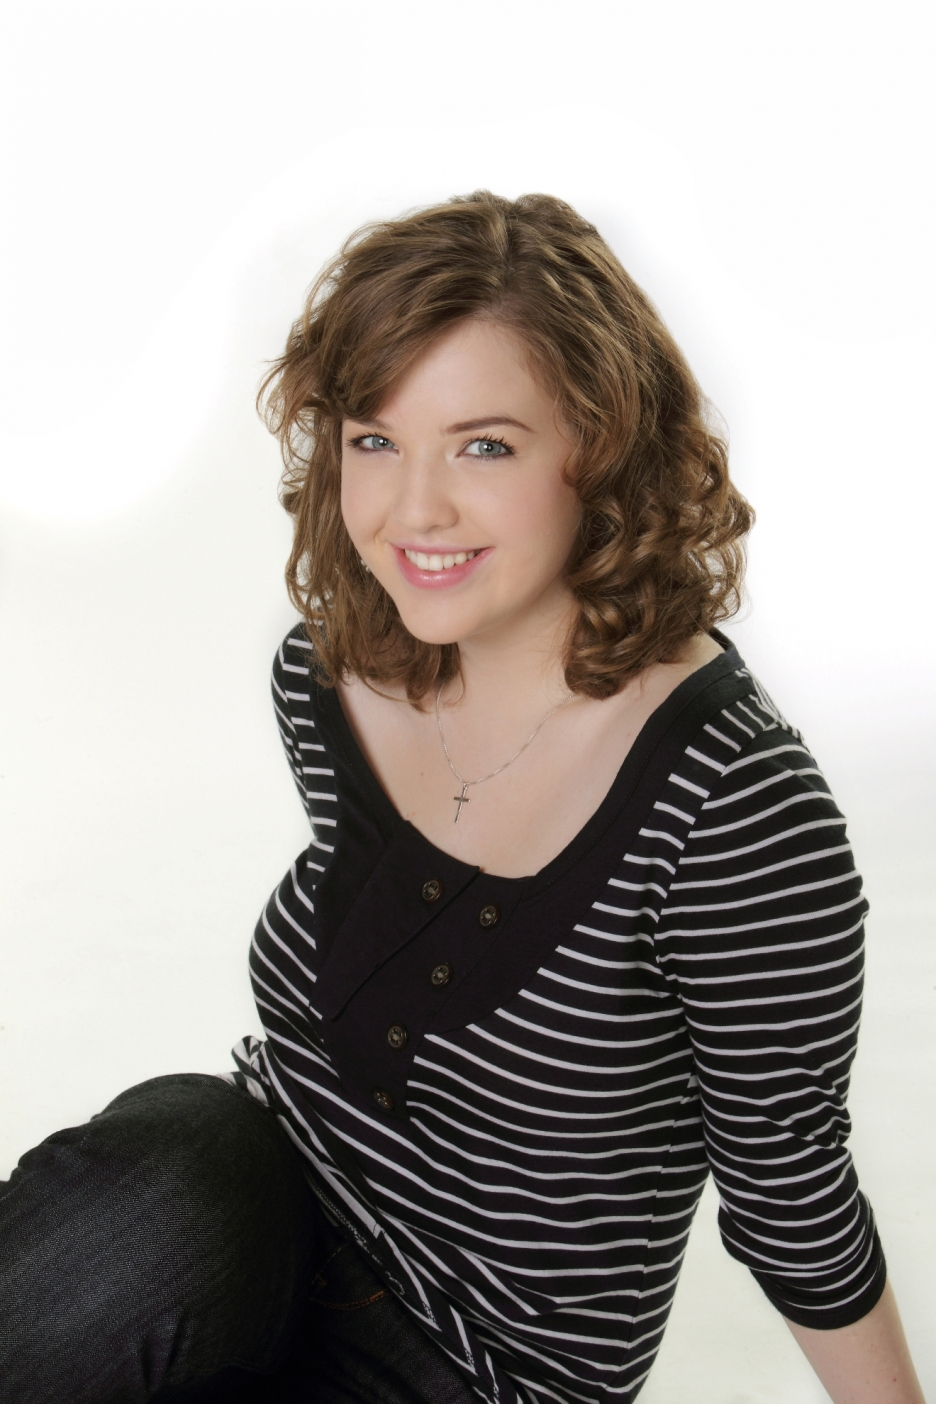 aislinn paul heroesaislinn paul height and weight, aislinn paul, aislinn paul instagram, aislinn paul boyfriend, aislinn paul height, aislinn paul degrassi, aislinn paul wikipedia, aislinn paul and munro chambers, aislinn paul twitter, aislinn paul heroes, aislinn paul and munro chambers engaged, aislinn paul tumblr, aislinn paul feet, aislinn paul pregnant, aislinn paul and luke bilyk, aislinn paul net worth, aislinn paul dating, aislinn paul reign, aislinn paul facebook, aislinn paul 2014